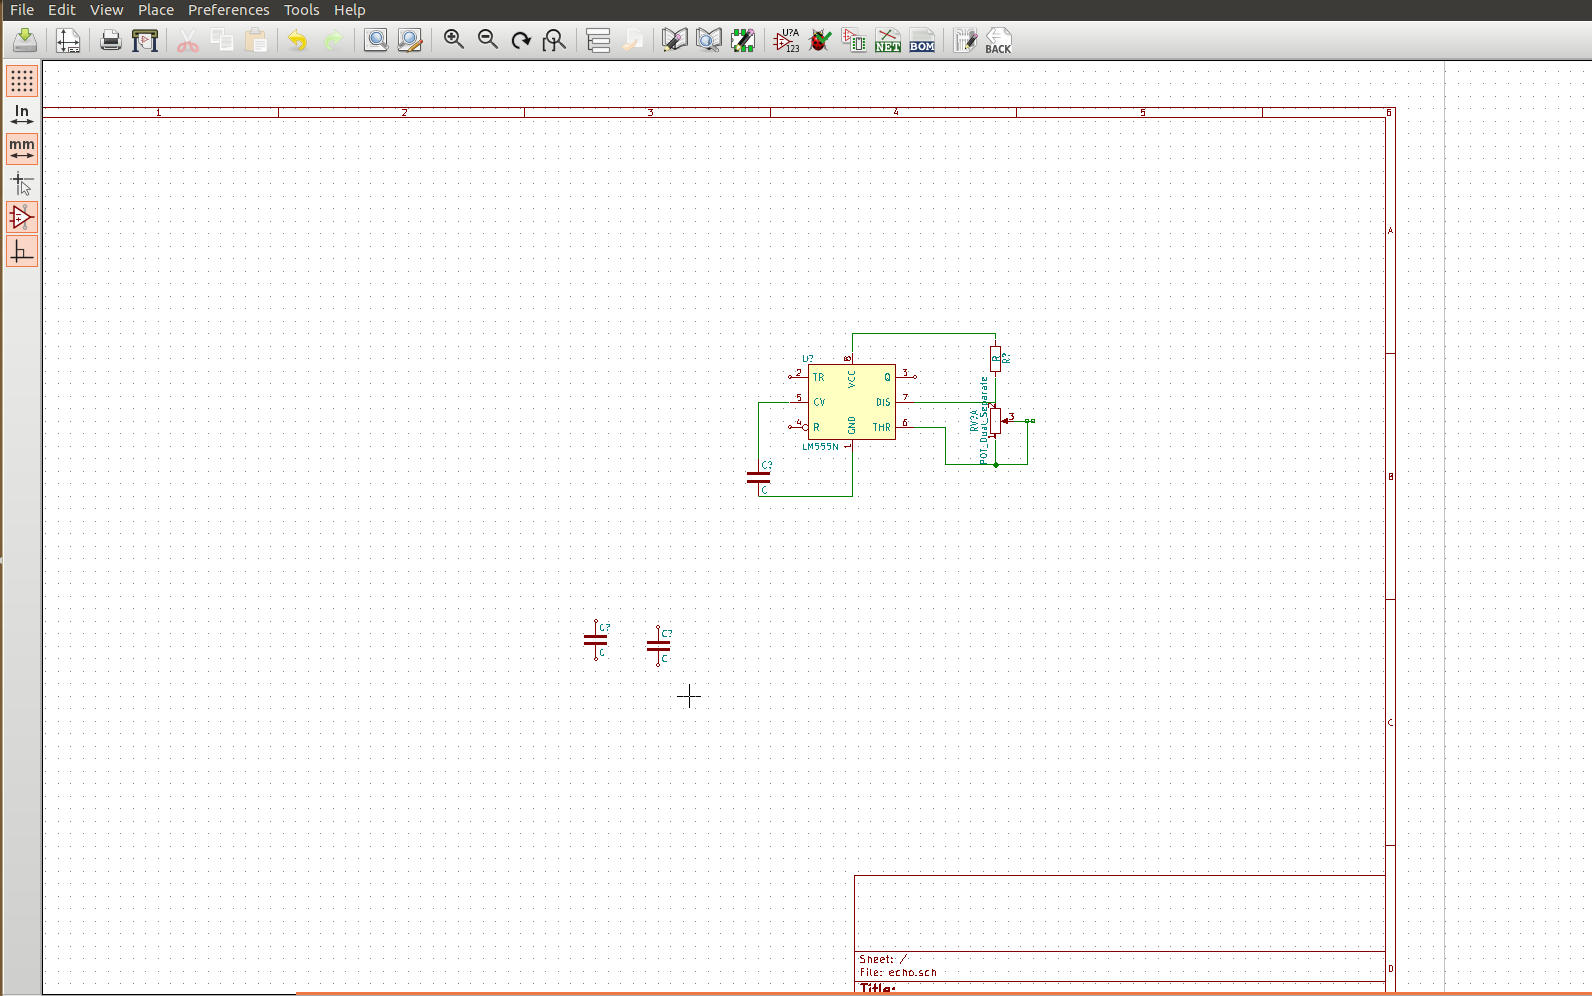 Ajiths Fab Diary 2017 Electronic Mosquito Repellent Circuit Diagram Using Ic 555 I Started The Design Of Repeller In Kicad As It Requires Ic555 Timer Was There Its Default Library And Placed Other Components Like